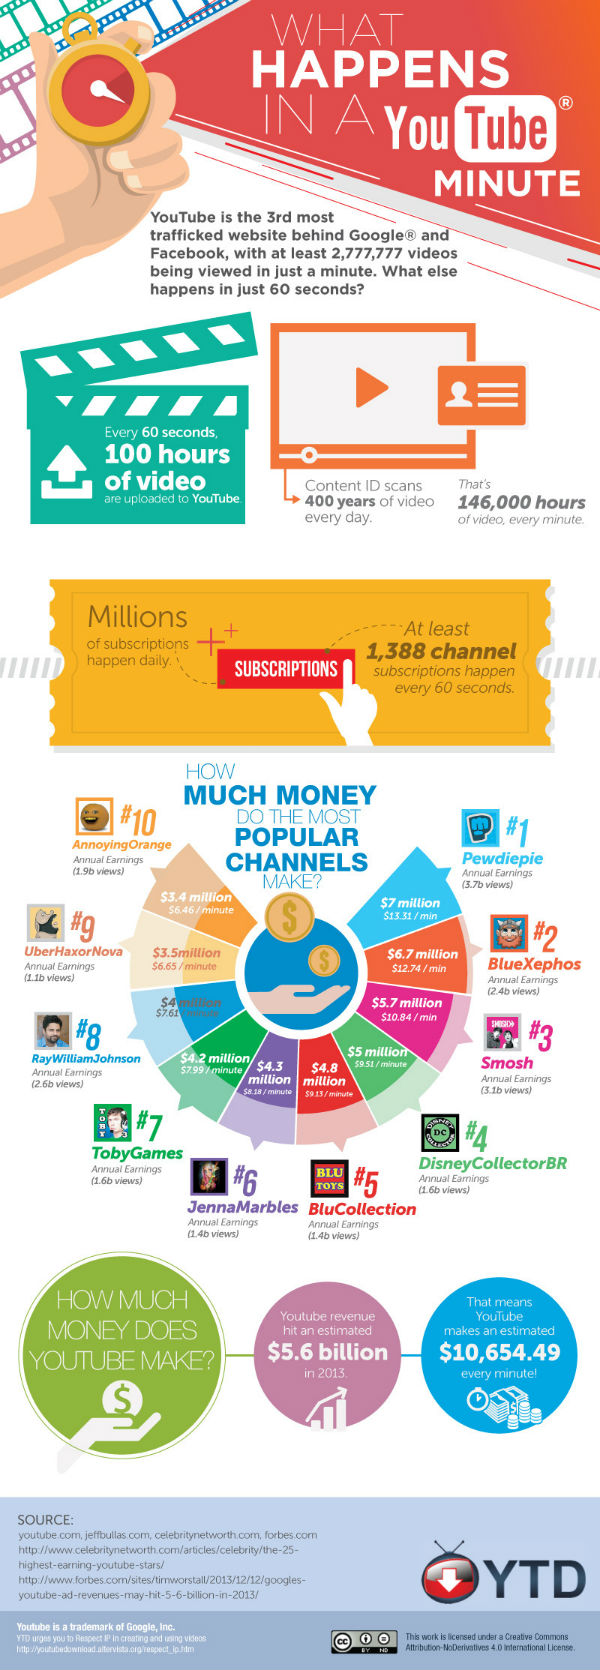 YouTube minute infographic